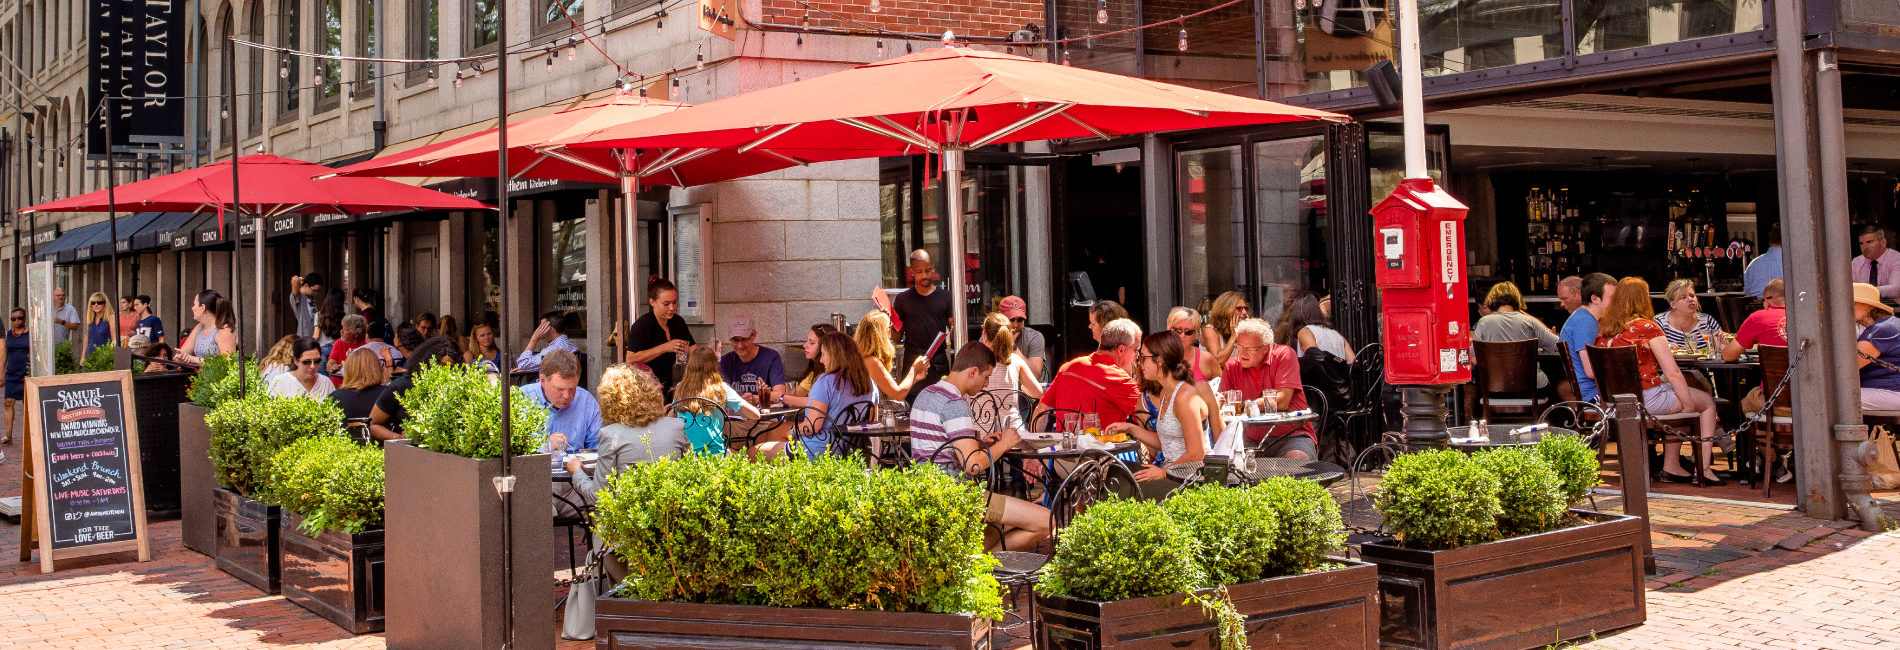 Our Top 5 Picks for Delectable Dining in Boston for Student Groups